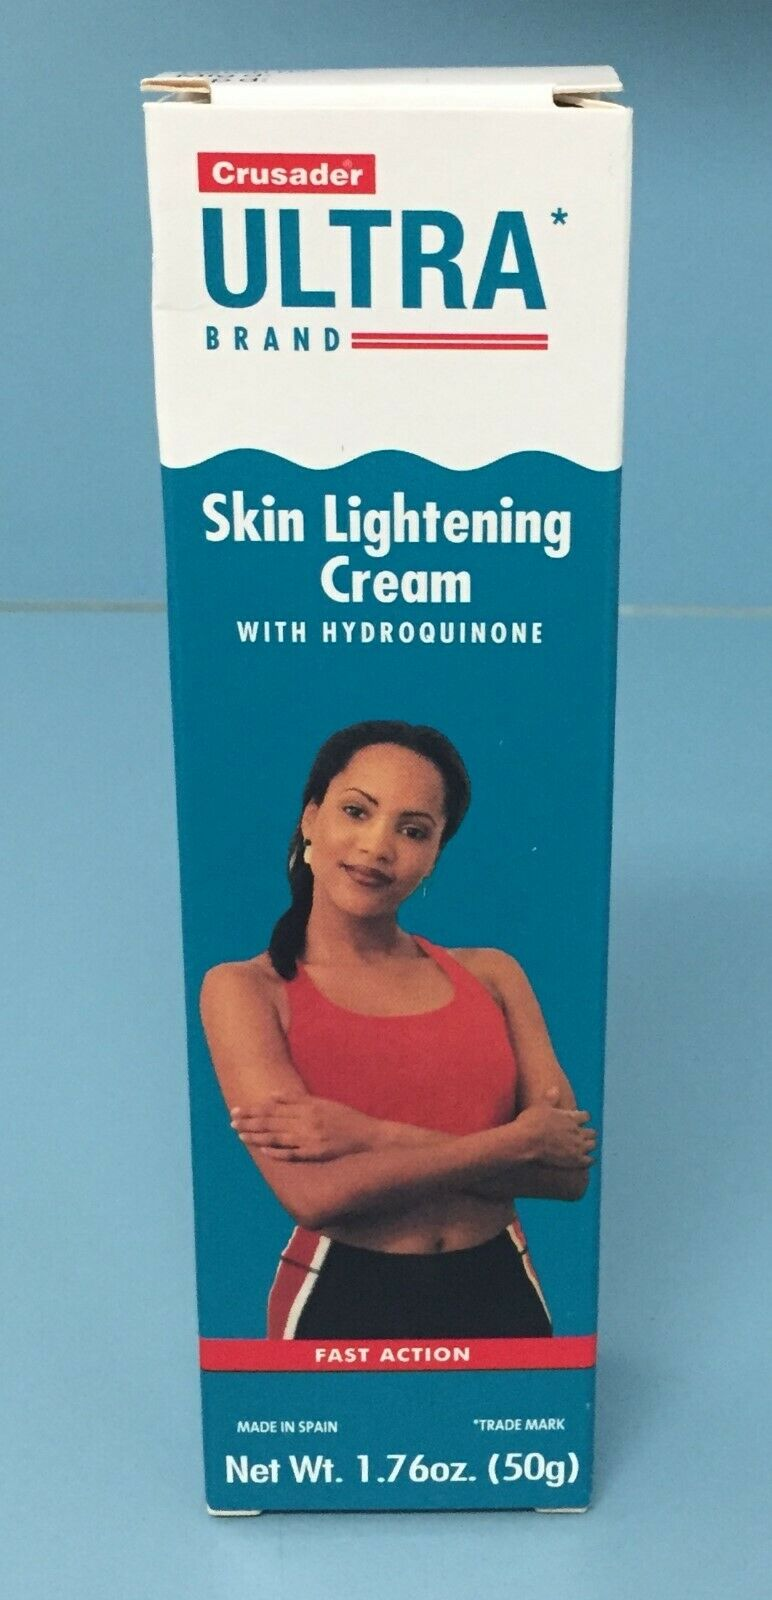 Crusader Ultra Skin Lightening Cream with Hydroquinone, 1.76